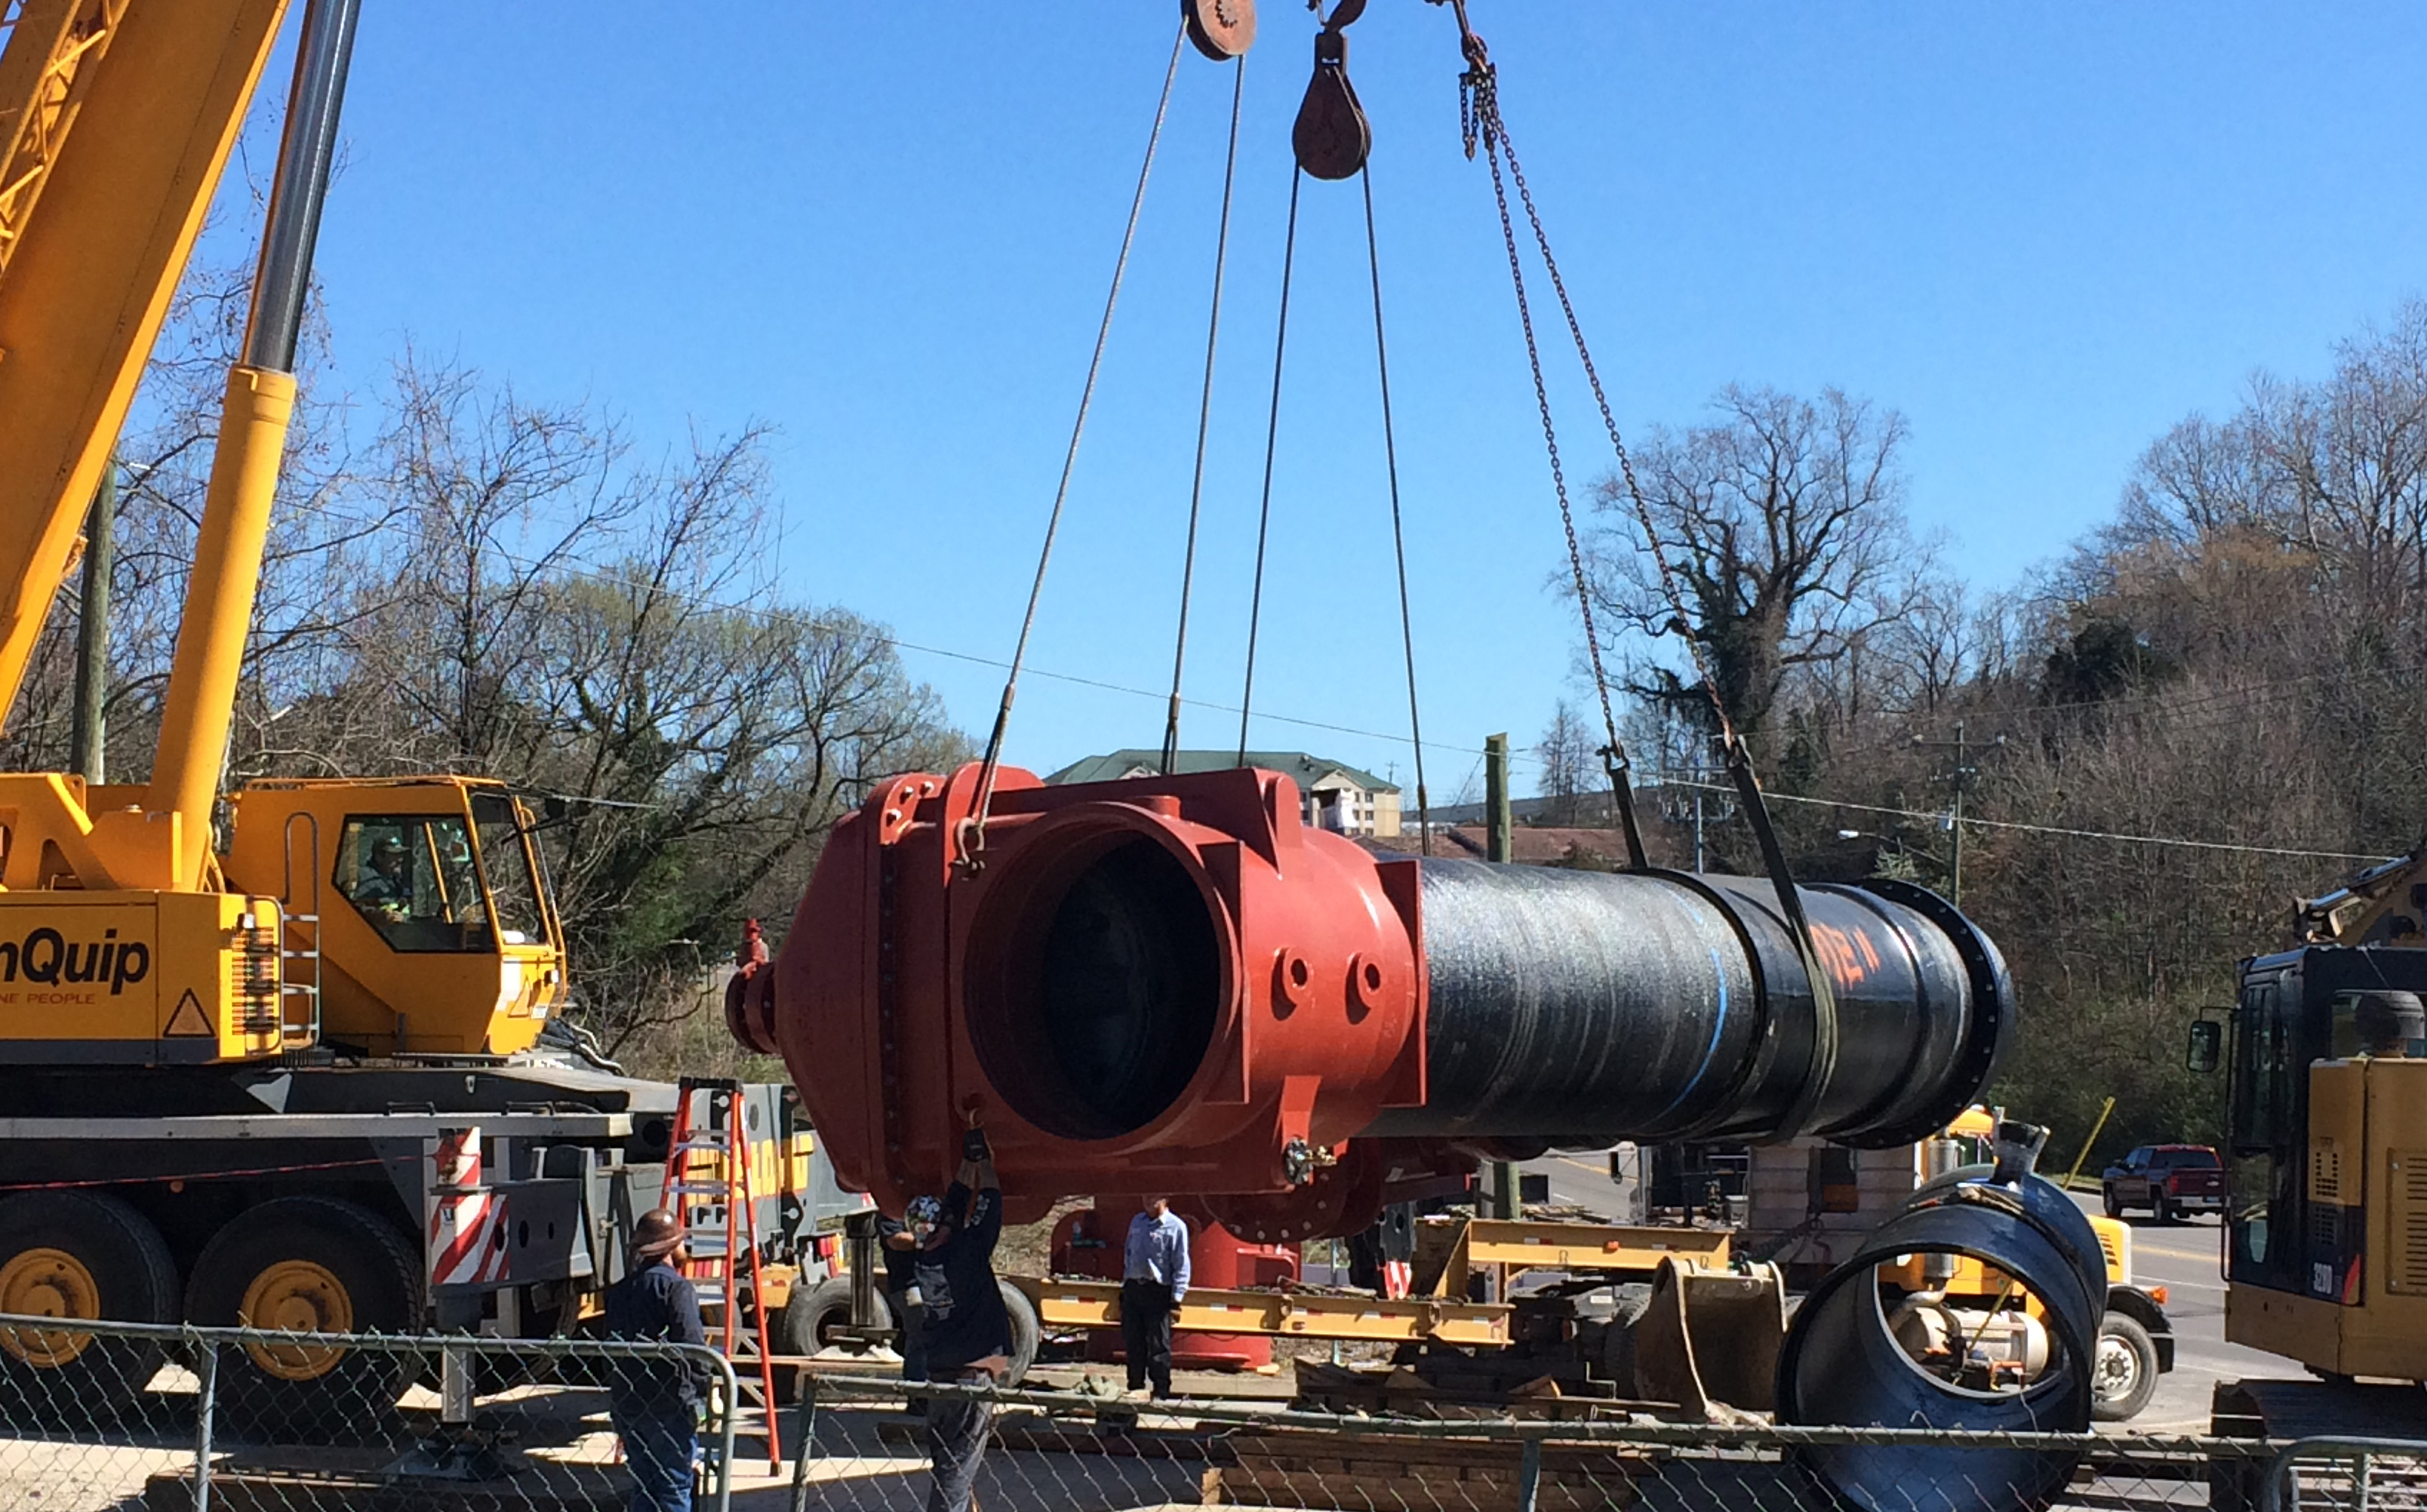 AMERICAN Flow Control is providing 13 resilient wedge gate valves with Flex-Ring ends in sizes 24, 36 and 60 inches. Pictured is AMERICAN's 60-inch Series 2500 RW gate valve, which weighs nearly 30,000 pounds and has a height of more than 13 feet. It is the first and the largest resilient wedge gate valve in the industry of its kind, without flanged ends.